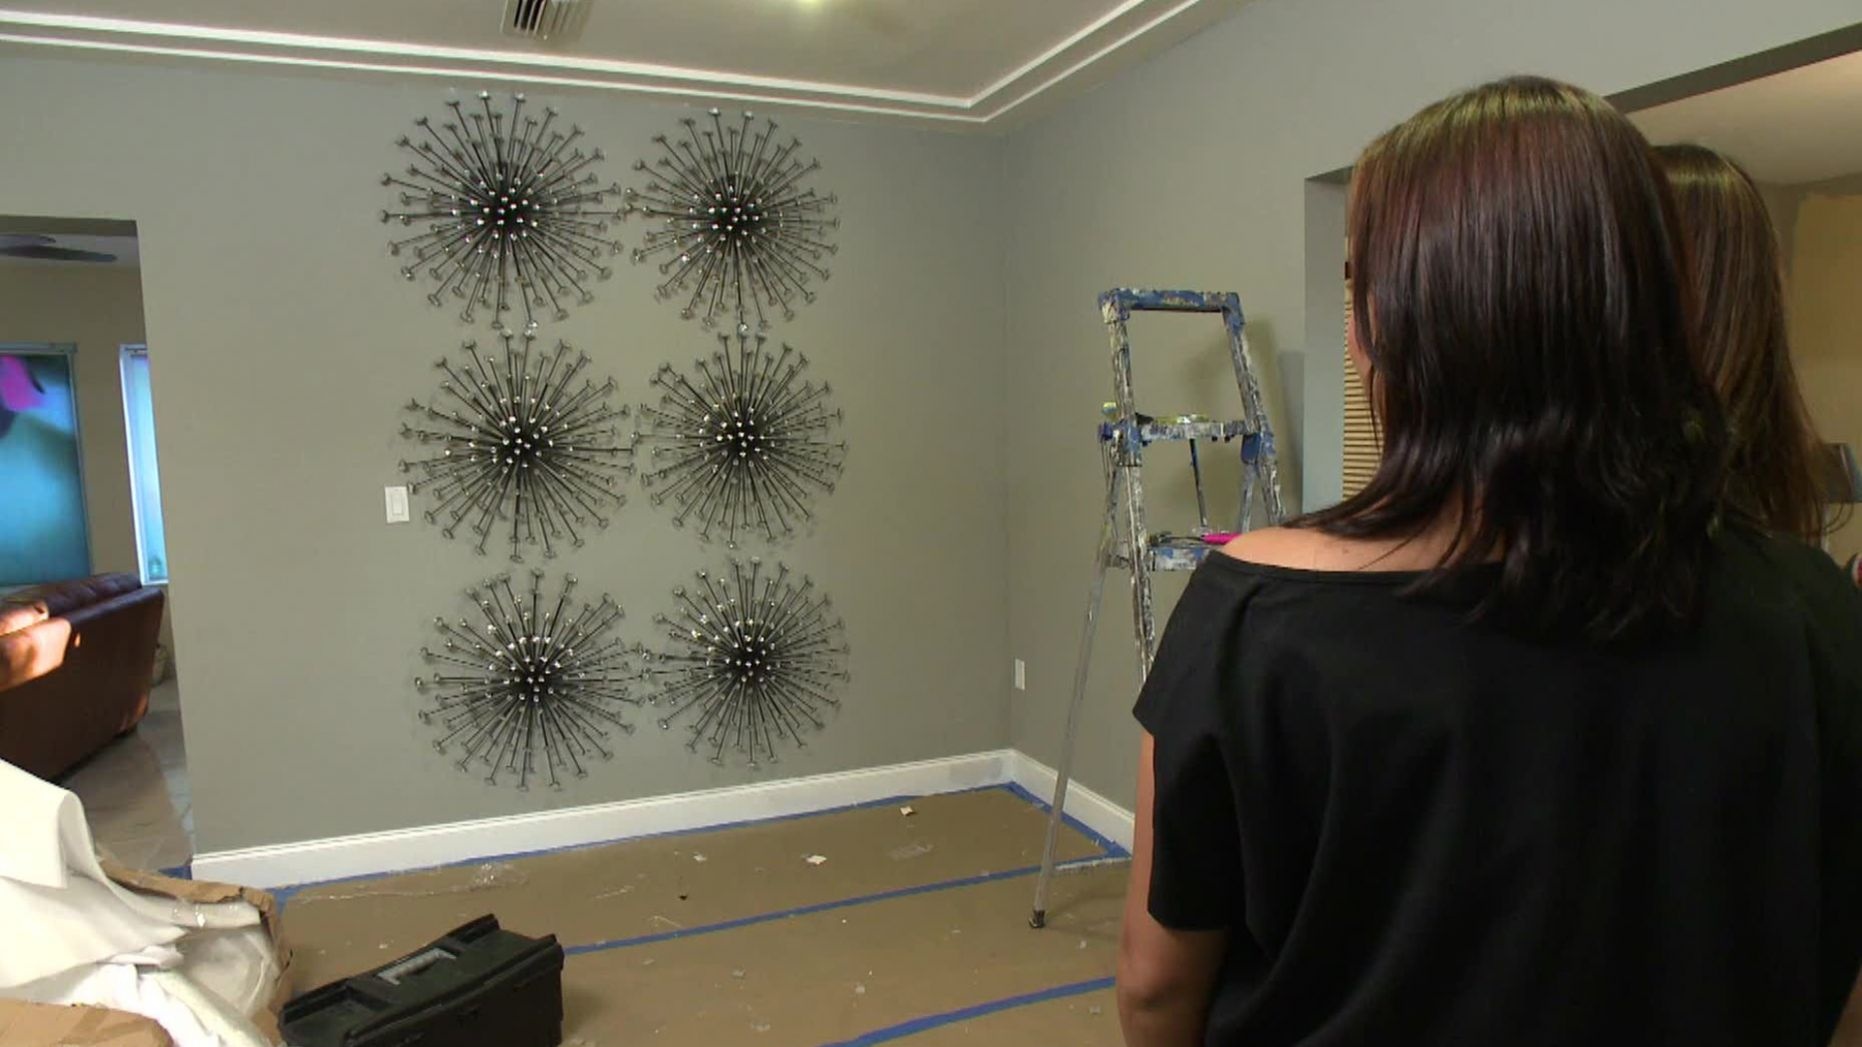 Get Unique Wall Decor Design Ideas from the Pros - wall decor ideas video